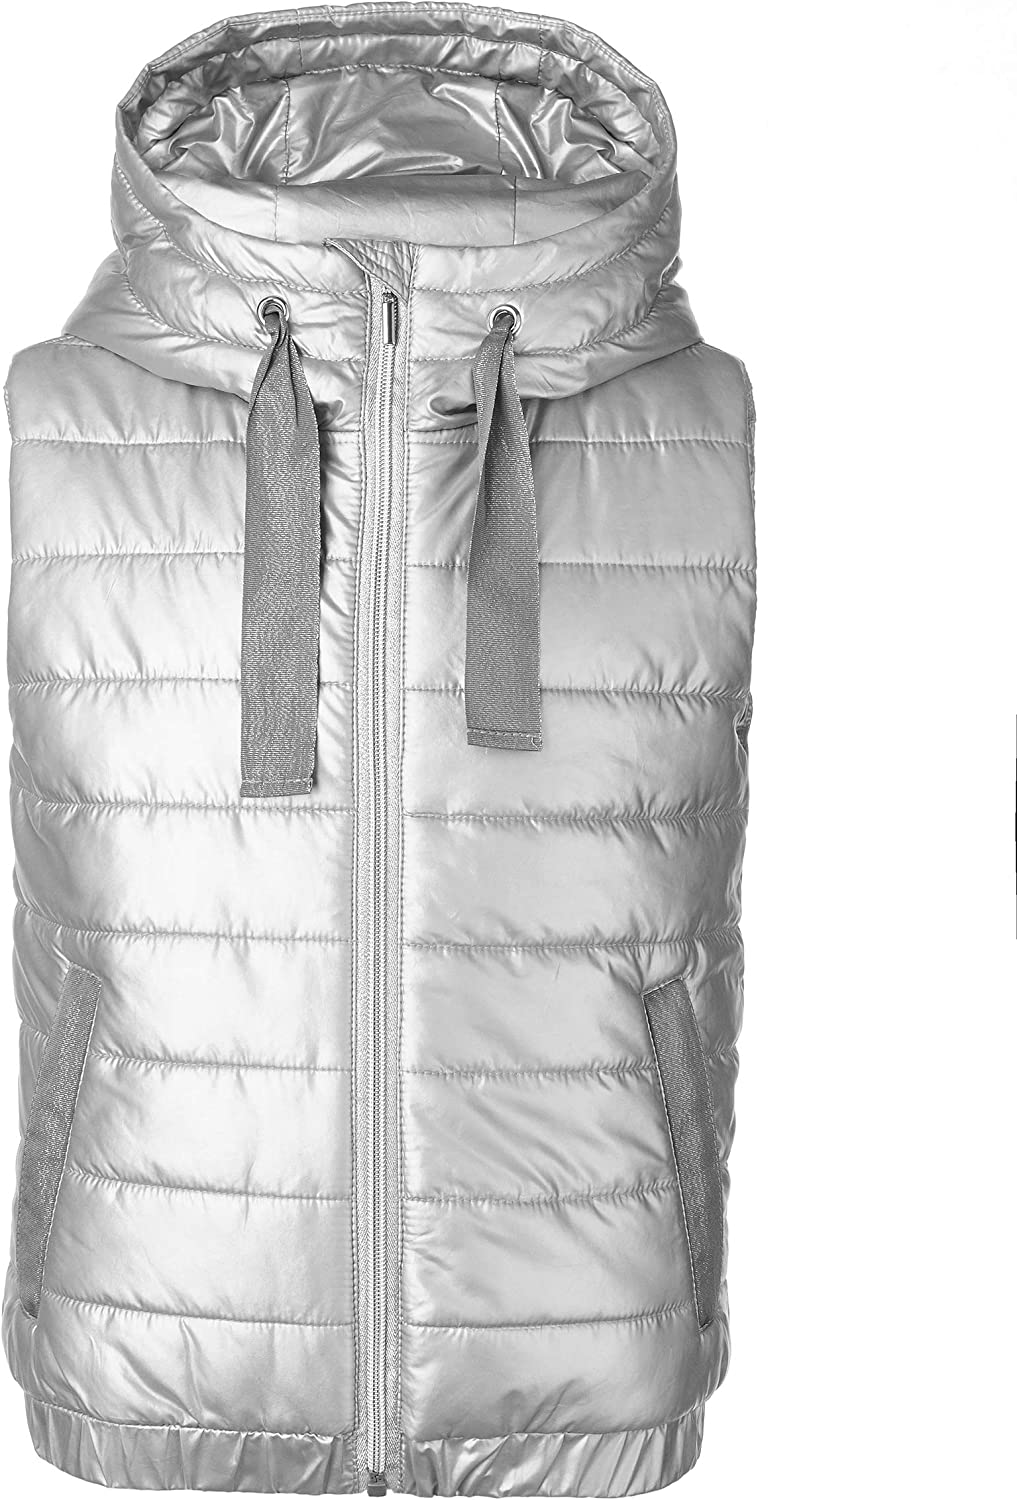 Hooded Colour Silver Plain Drawsting Warm Waterproof Polyester for 8-13 Years Sleeveless GULLIVER Teen Girls Quilted Vest//Gilet Zipped Casual Sport Regular Fit